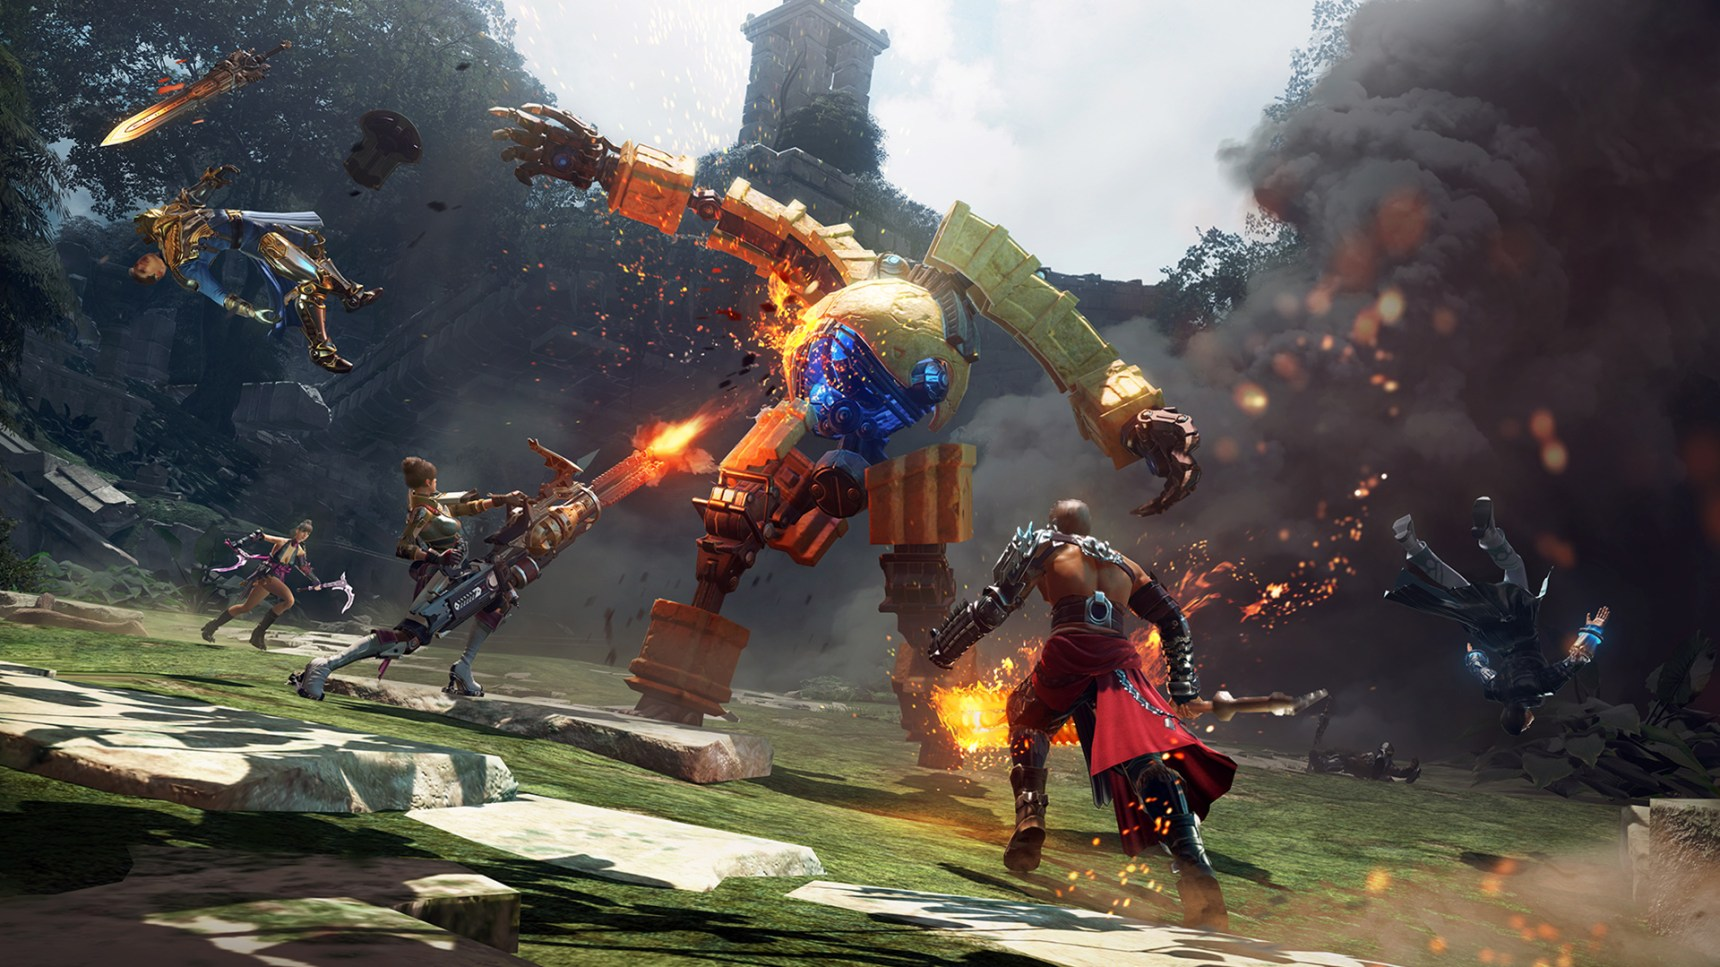 ss 4516bb711b774831335c6e402cd35faf2de83dca.1920x1080 1024x576 - SKYFORGE (MMORPG FREE TO PLAY)